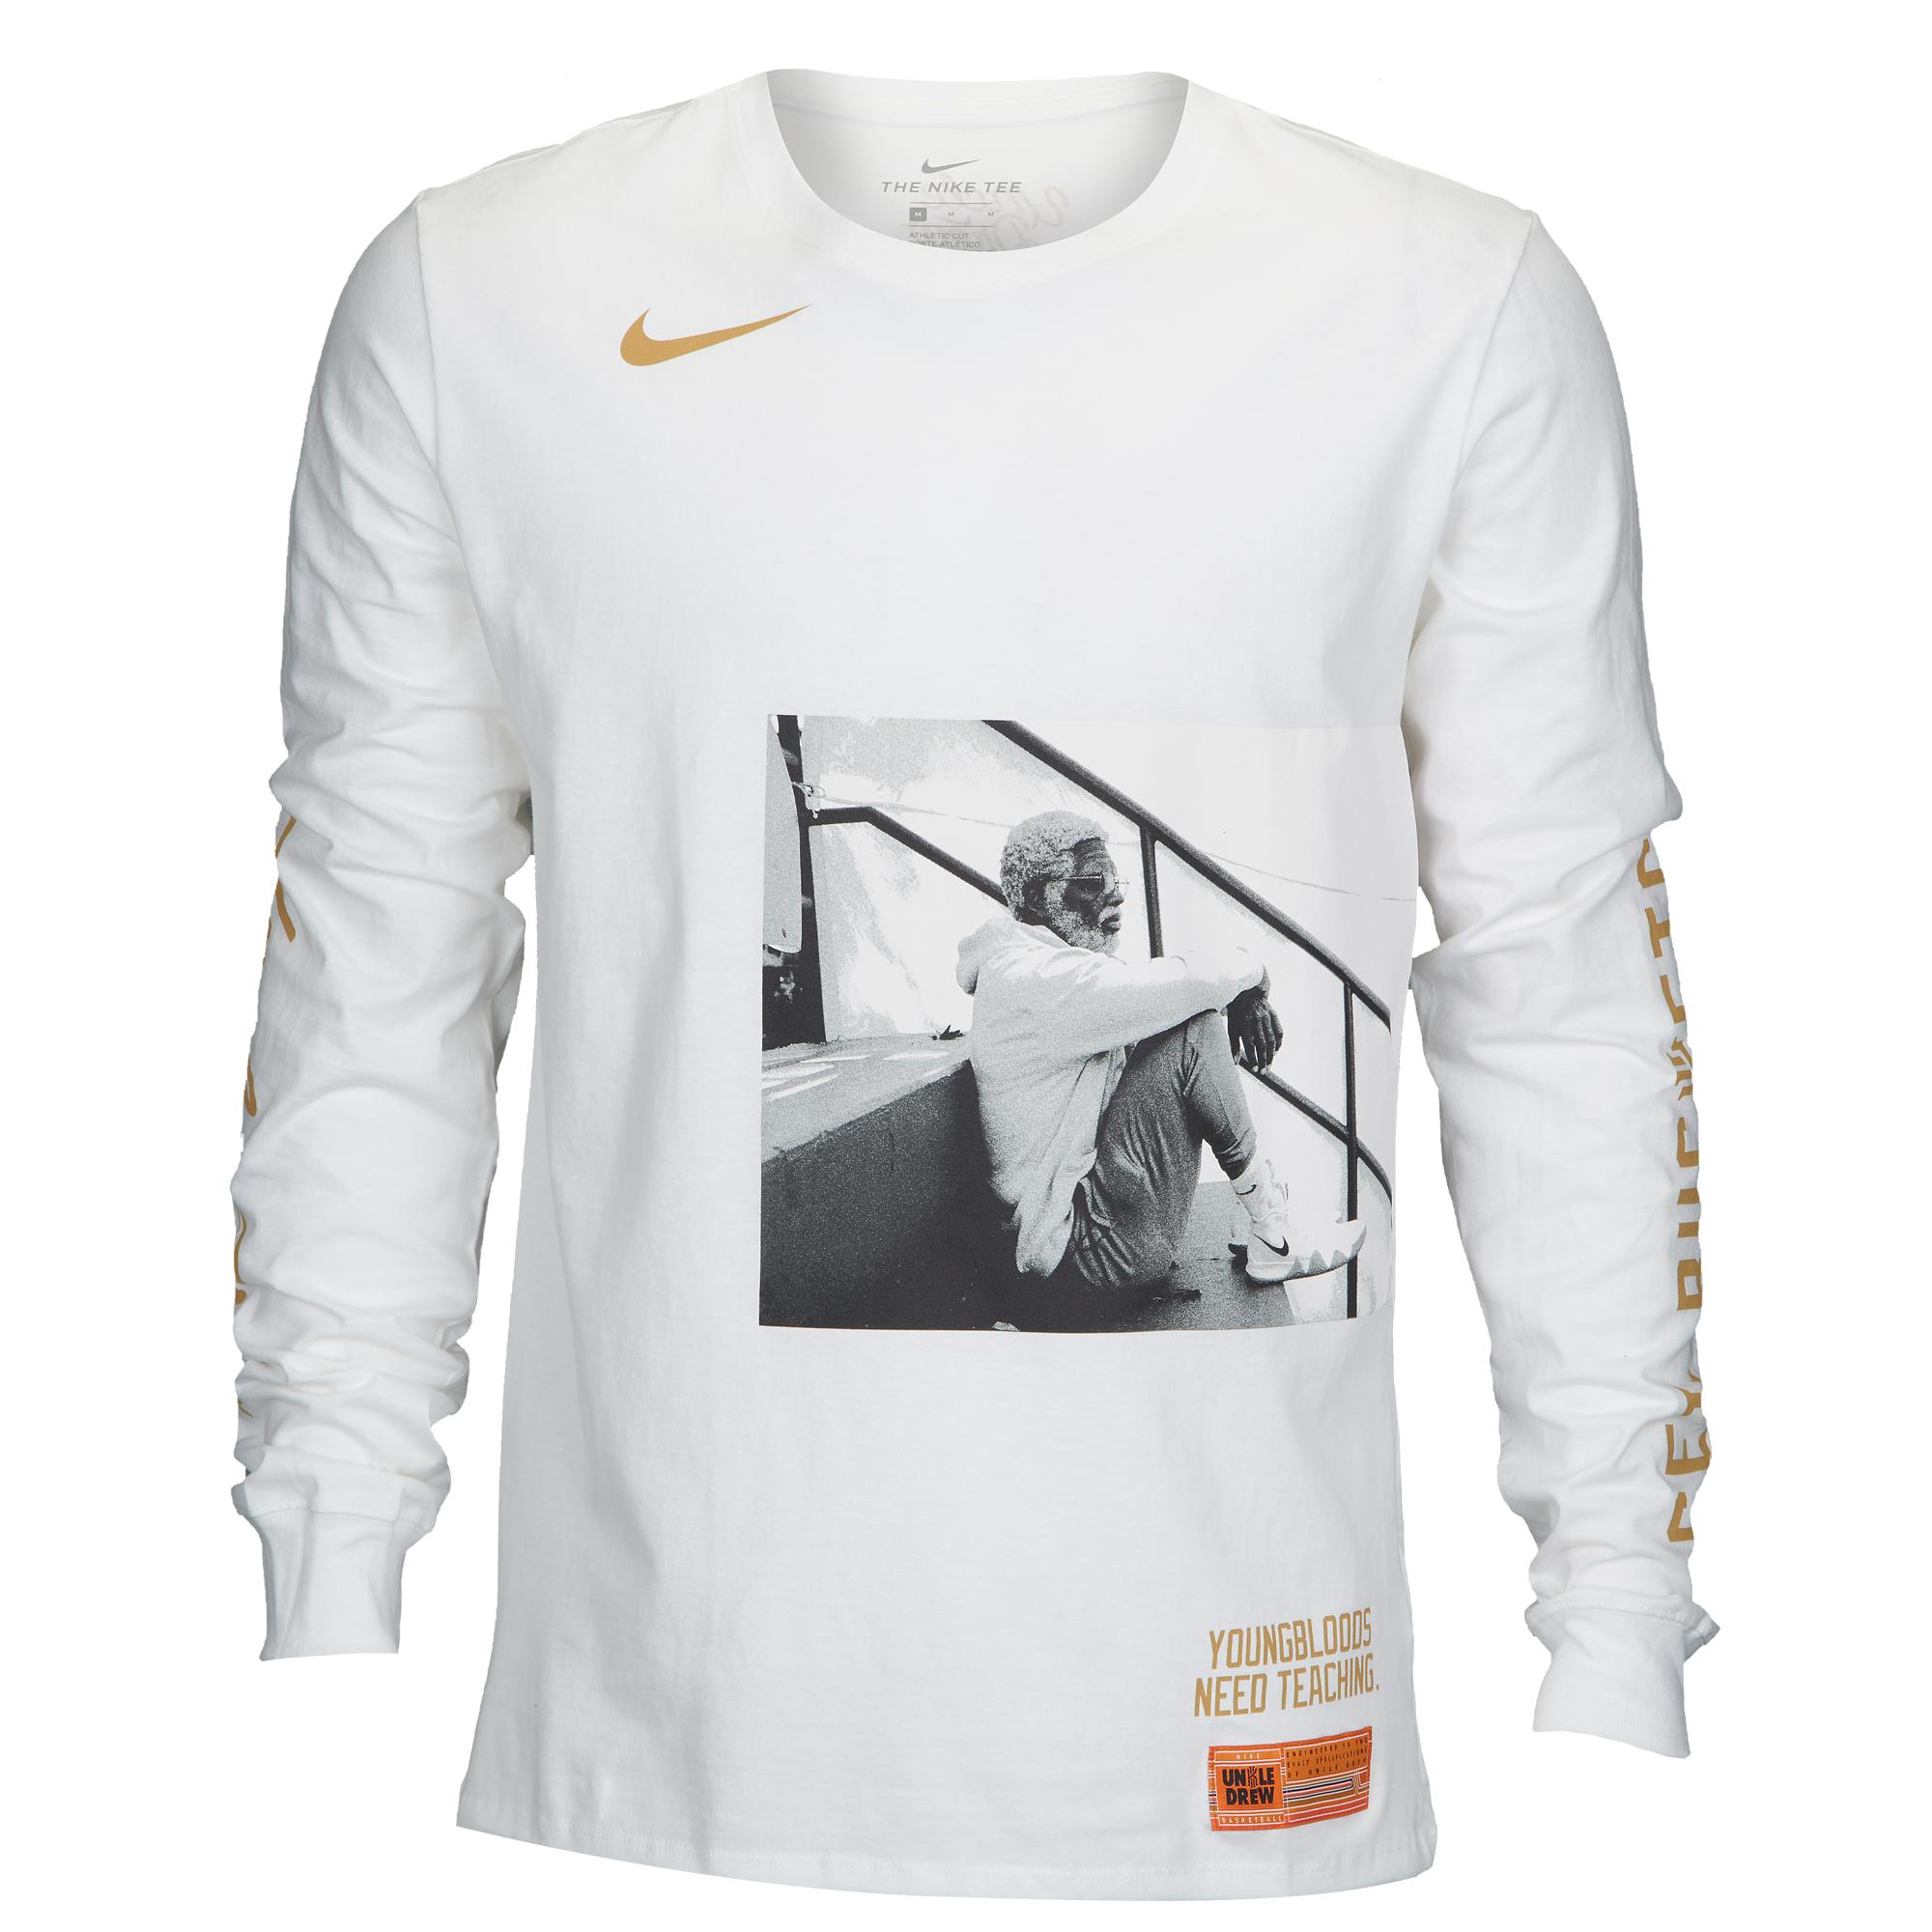 56879e92381 Nike Kyrie Irving Kyrie Uncle Drew L/s T-shirt in White for Men - Lyst